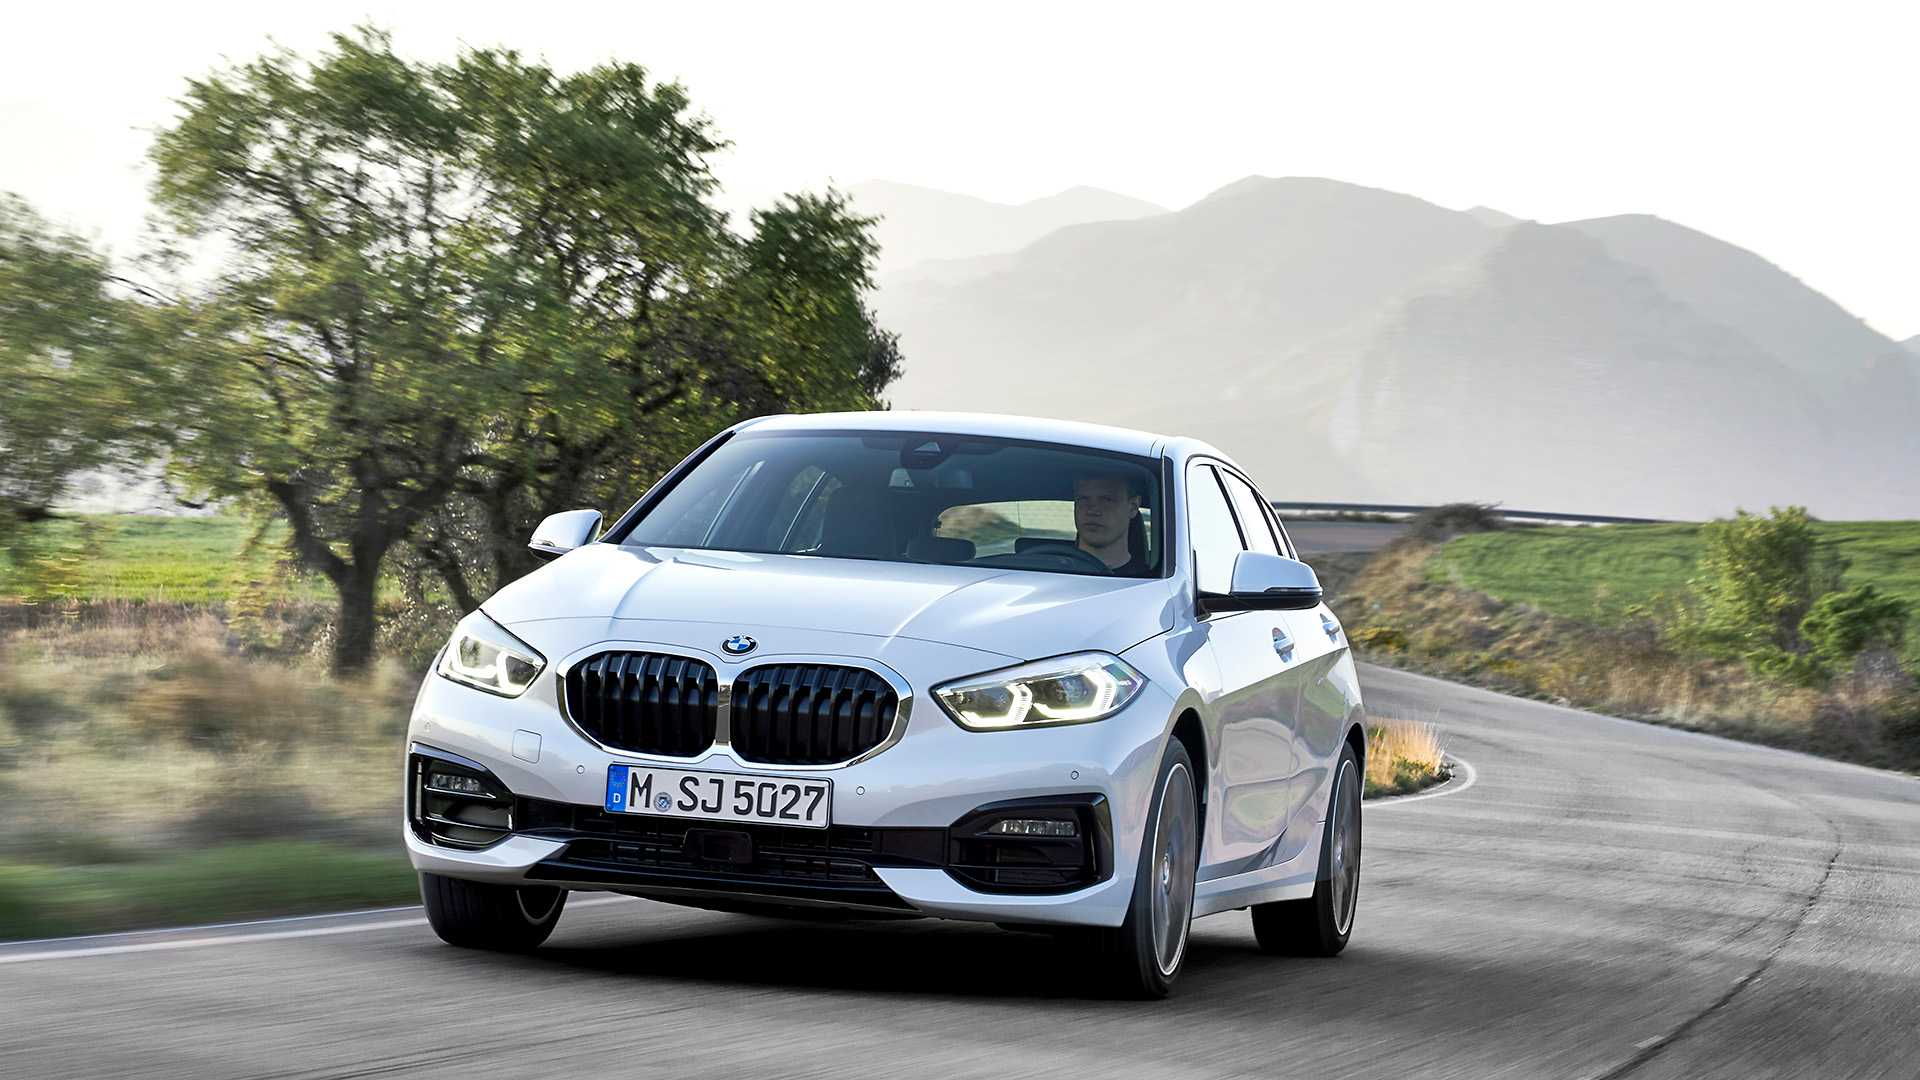 2020 BMW 1 Series Wallpapers 66 HD Images   NewCarCars 1920x1080